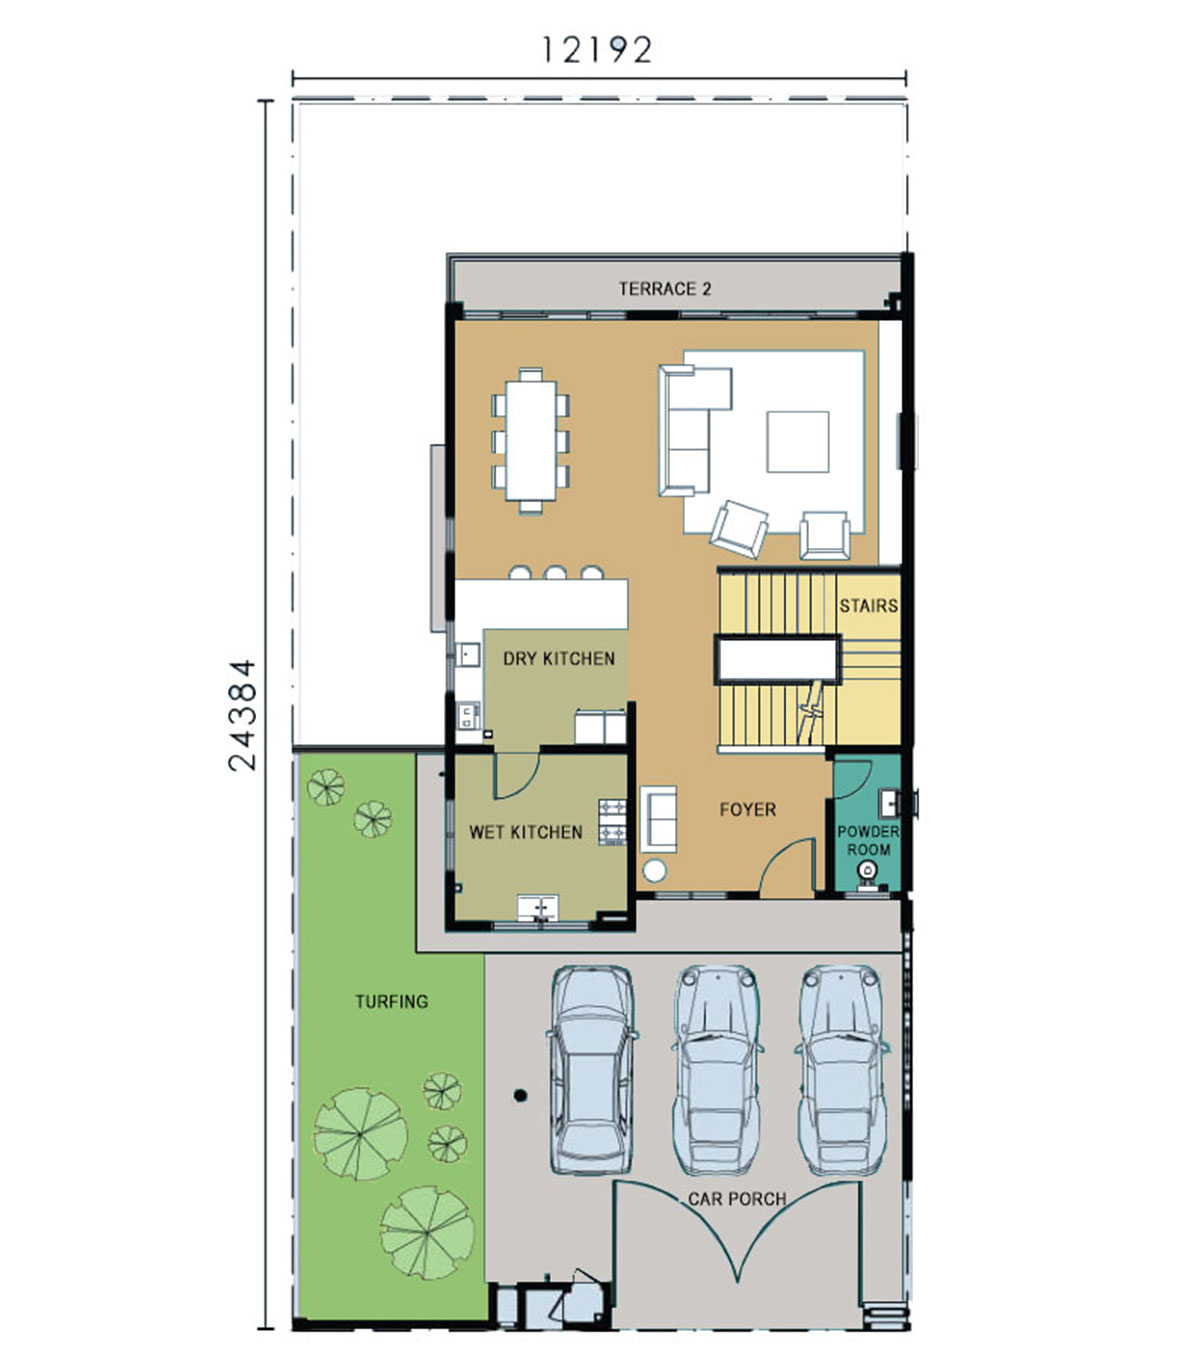 3-Storey Semi-Detached - Type C - First Floor